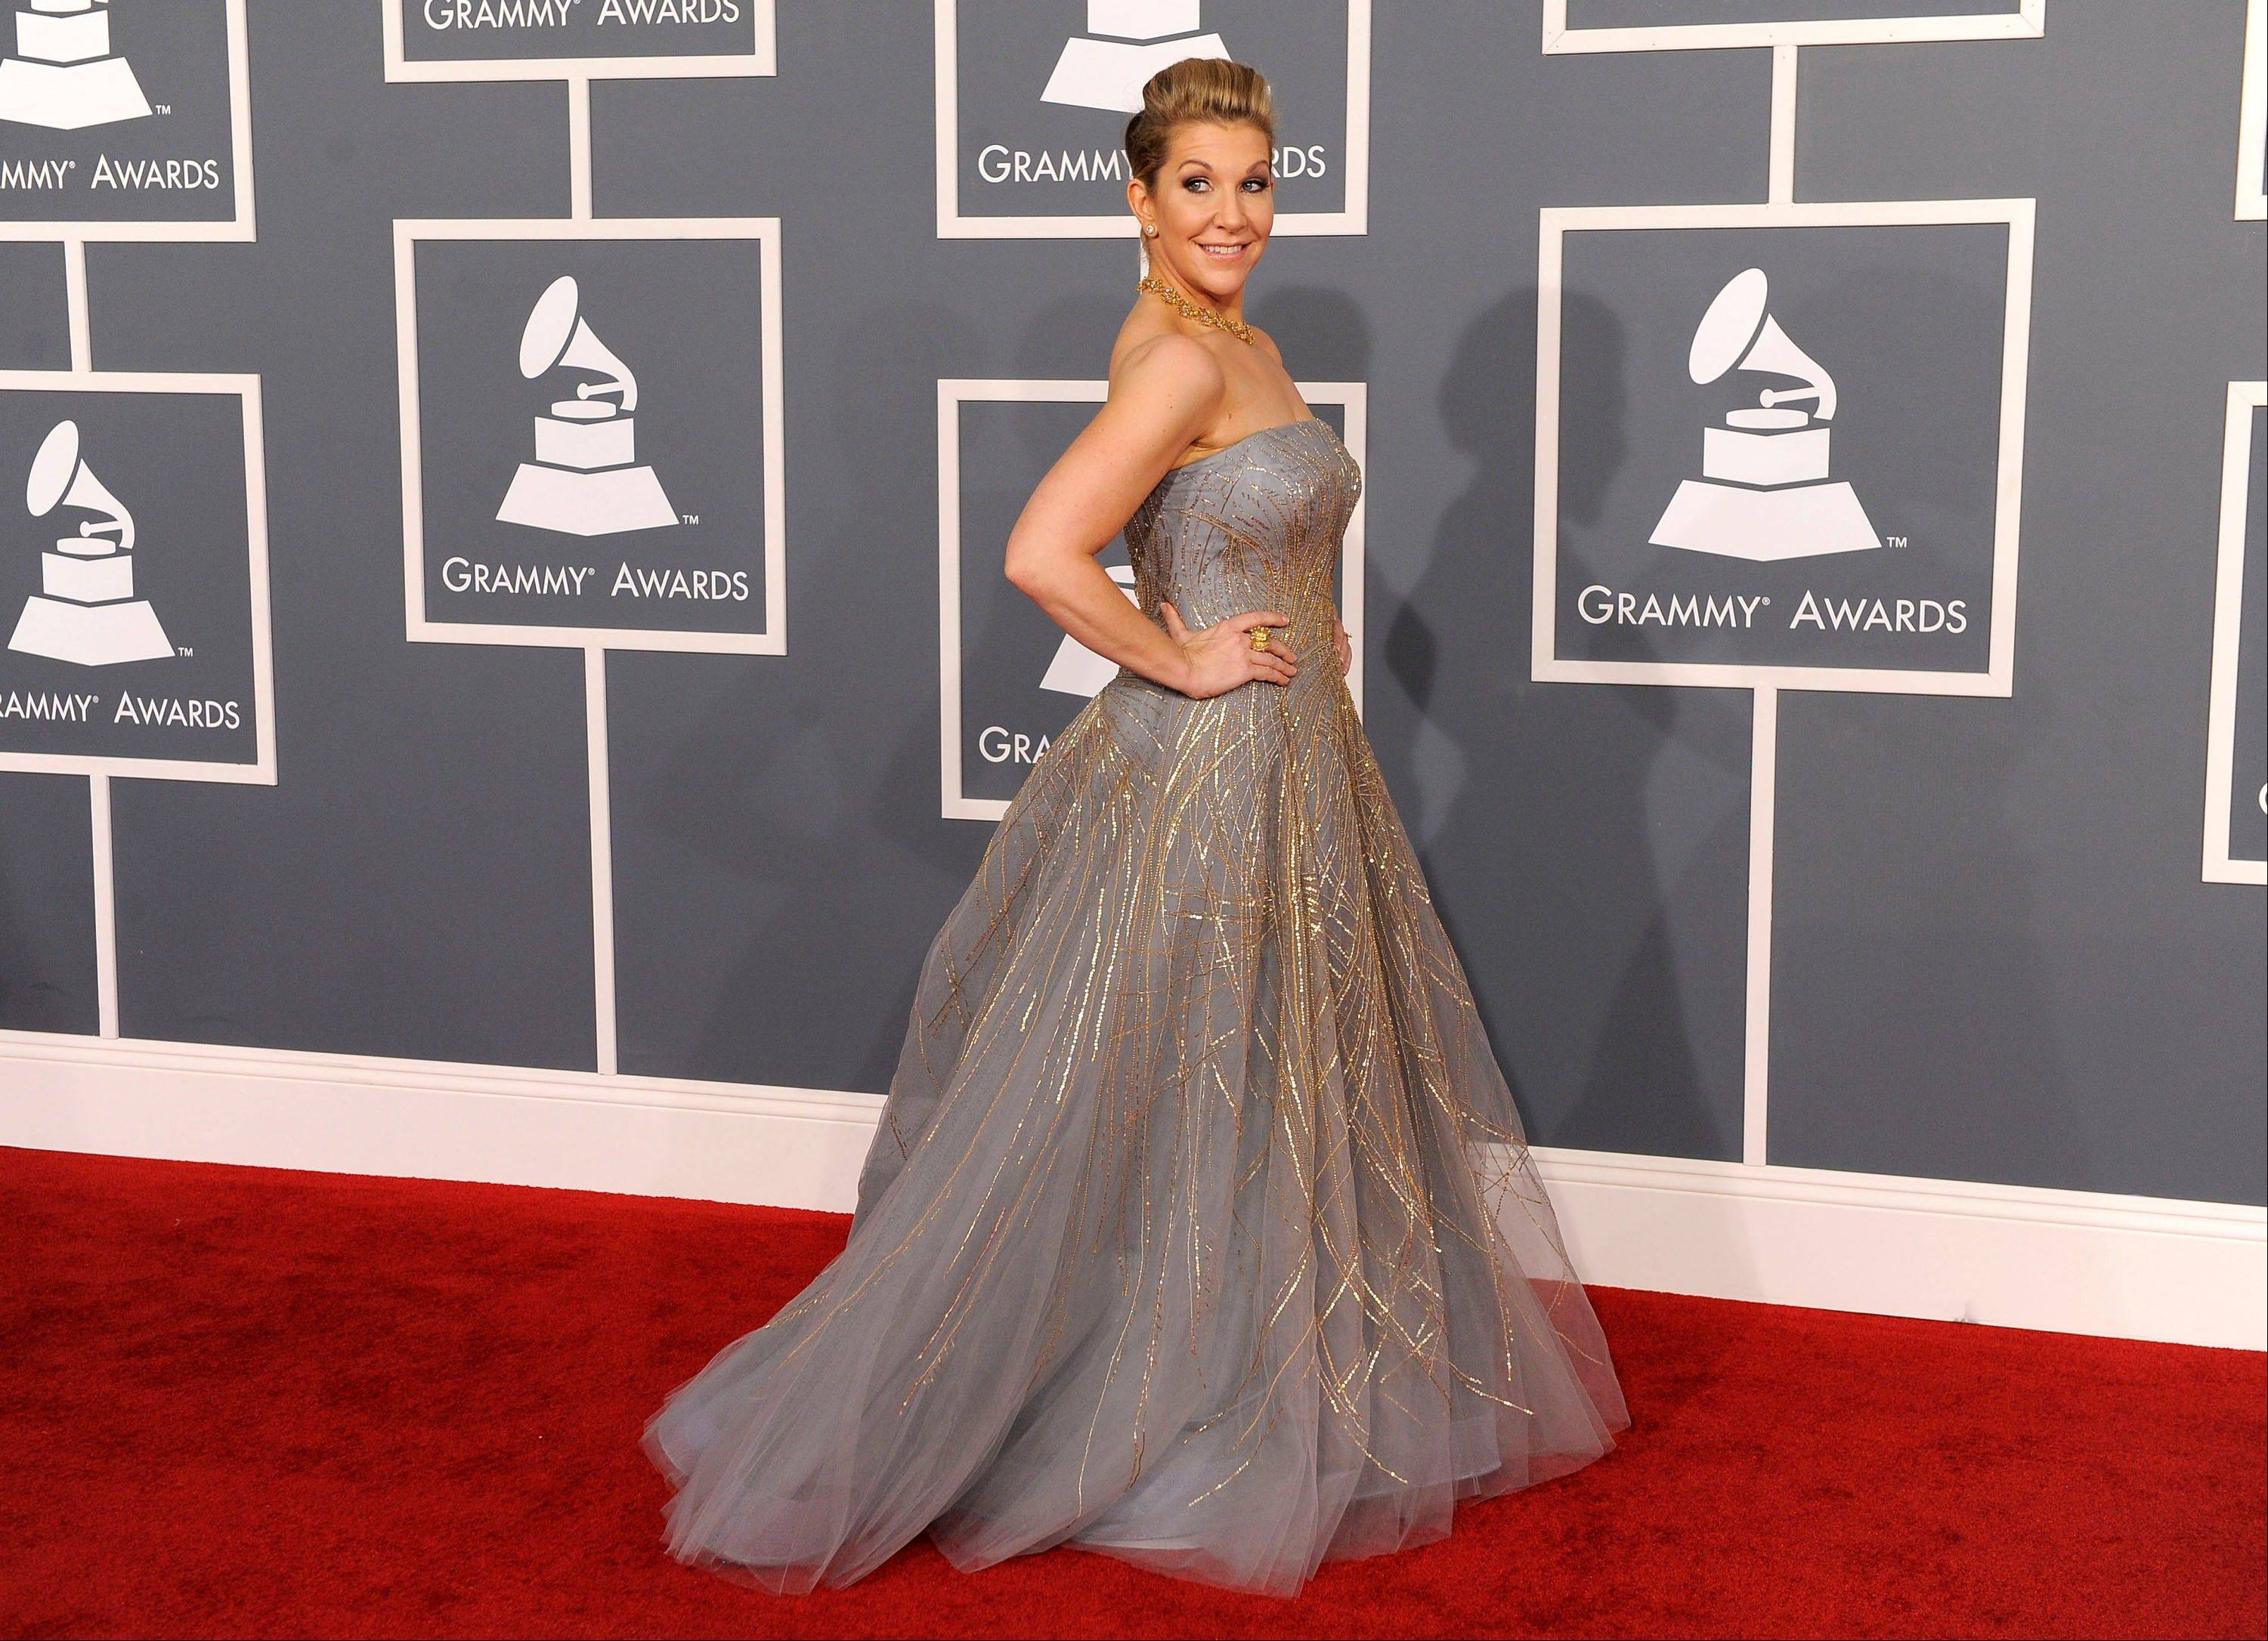 Joyce DiDonato arrives Sunday at the 54th annual Grammy Awards in Los Angeles.